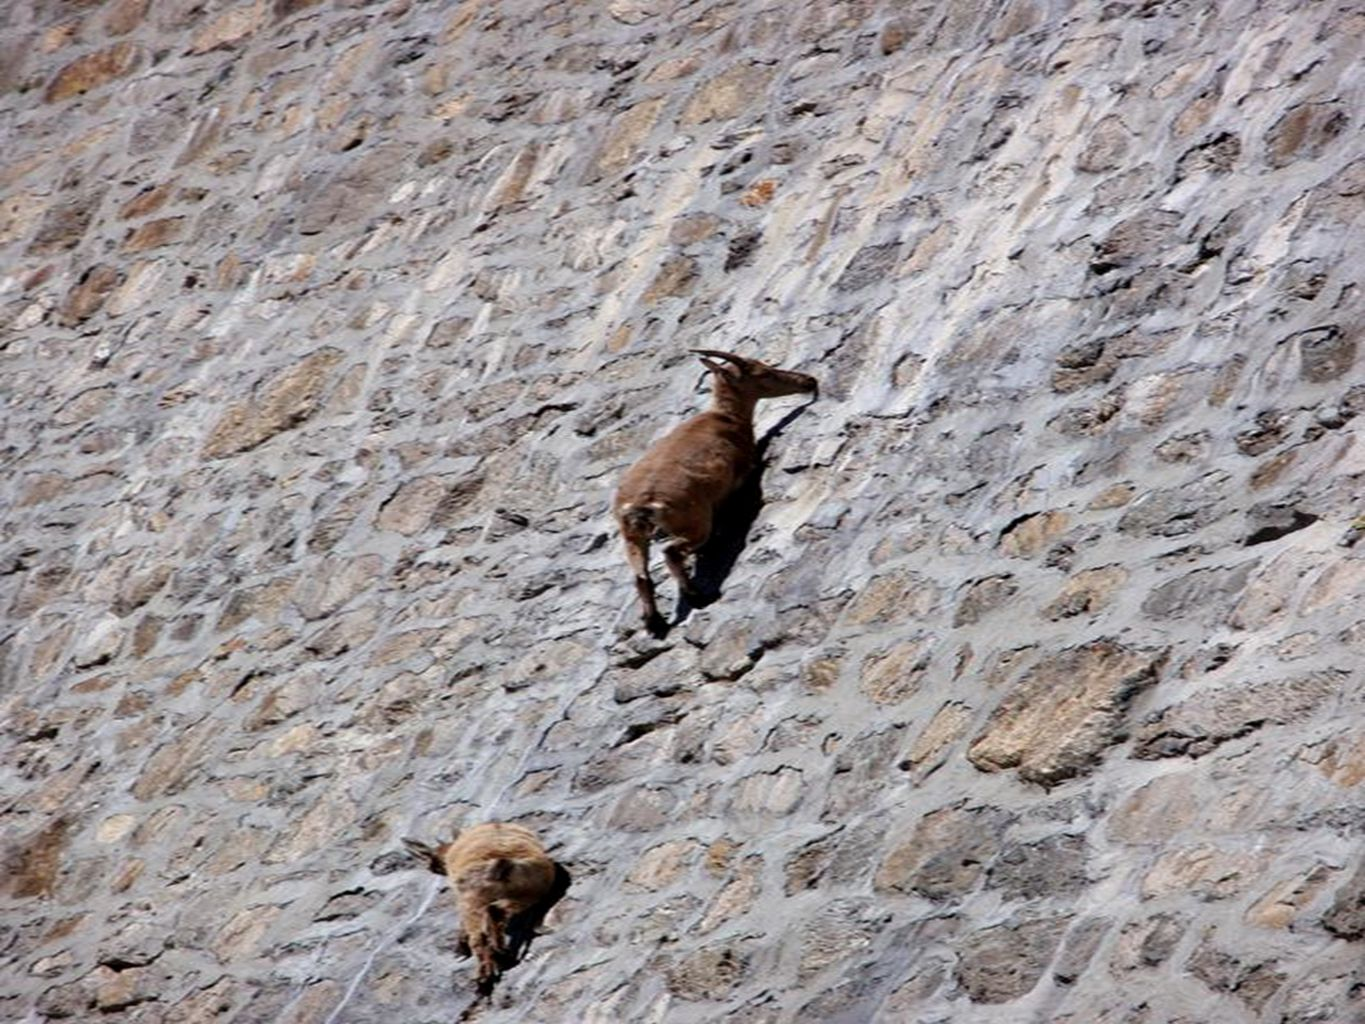 These are European Ibex, and they like to eat the moss and lick the salt on the dam wall